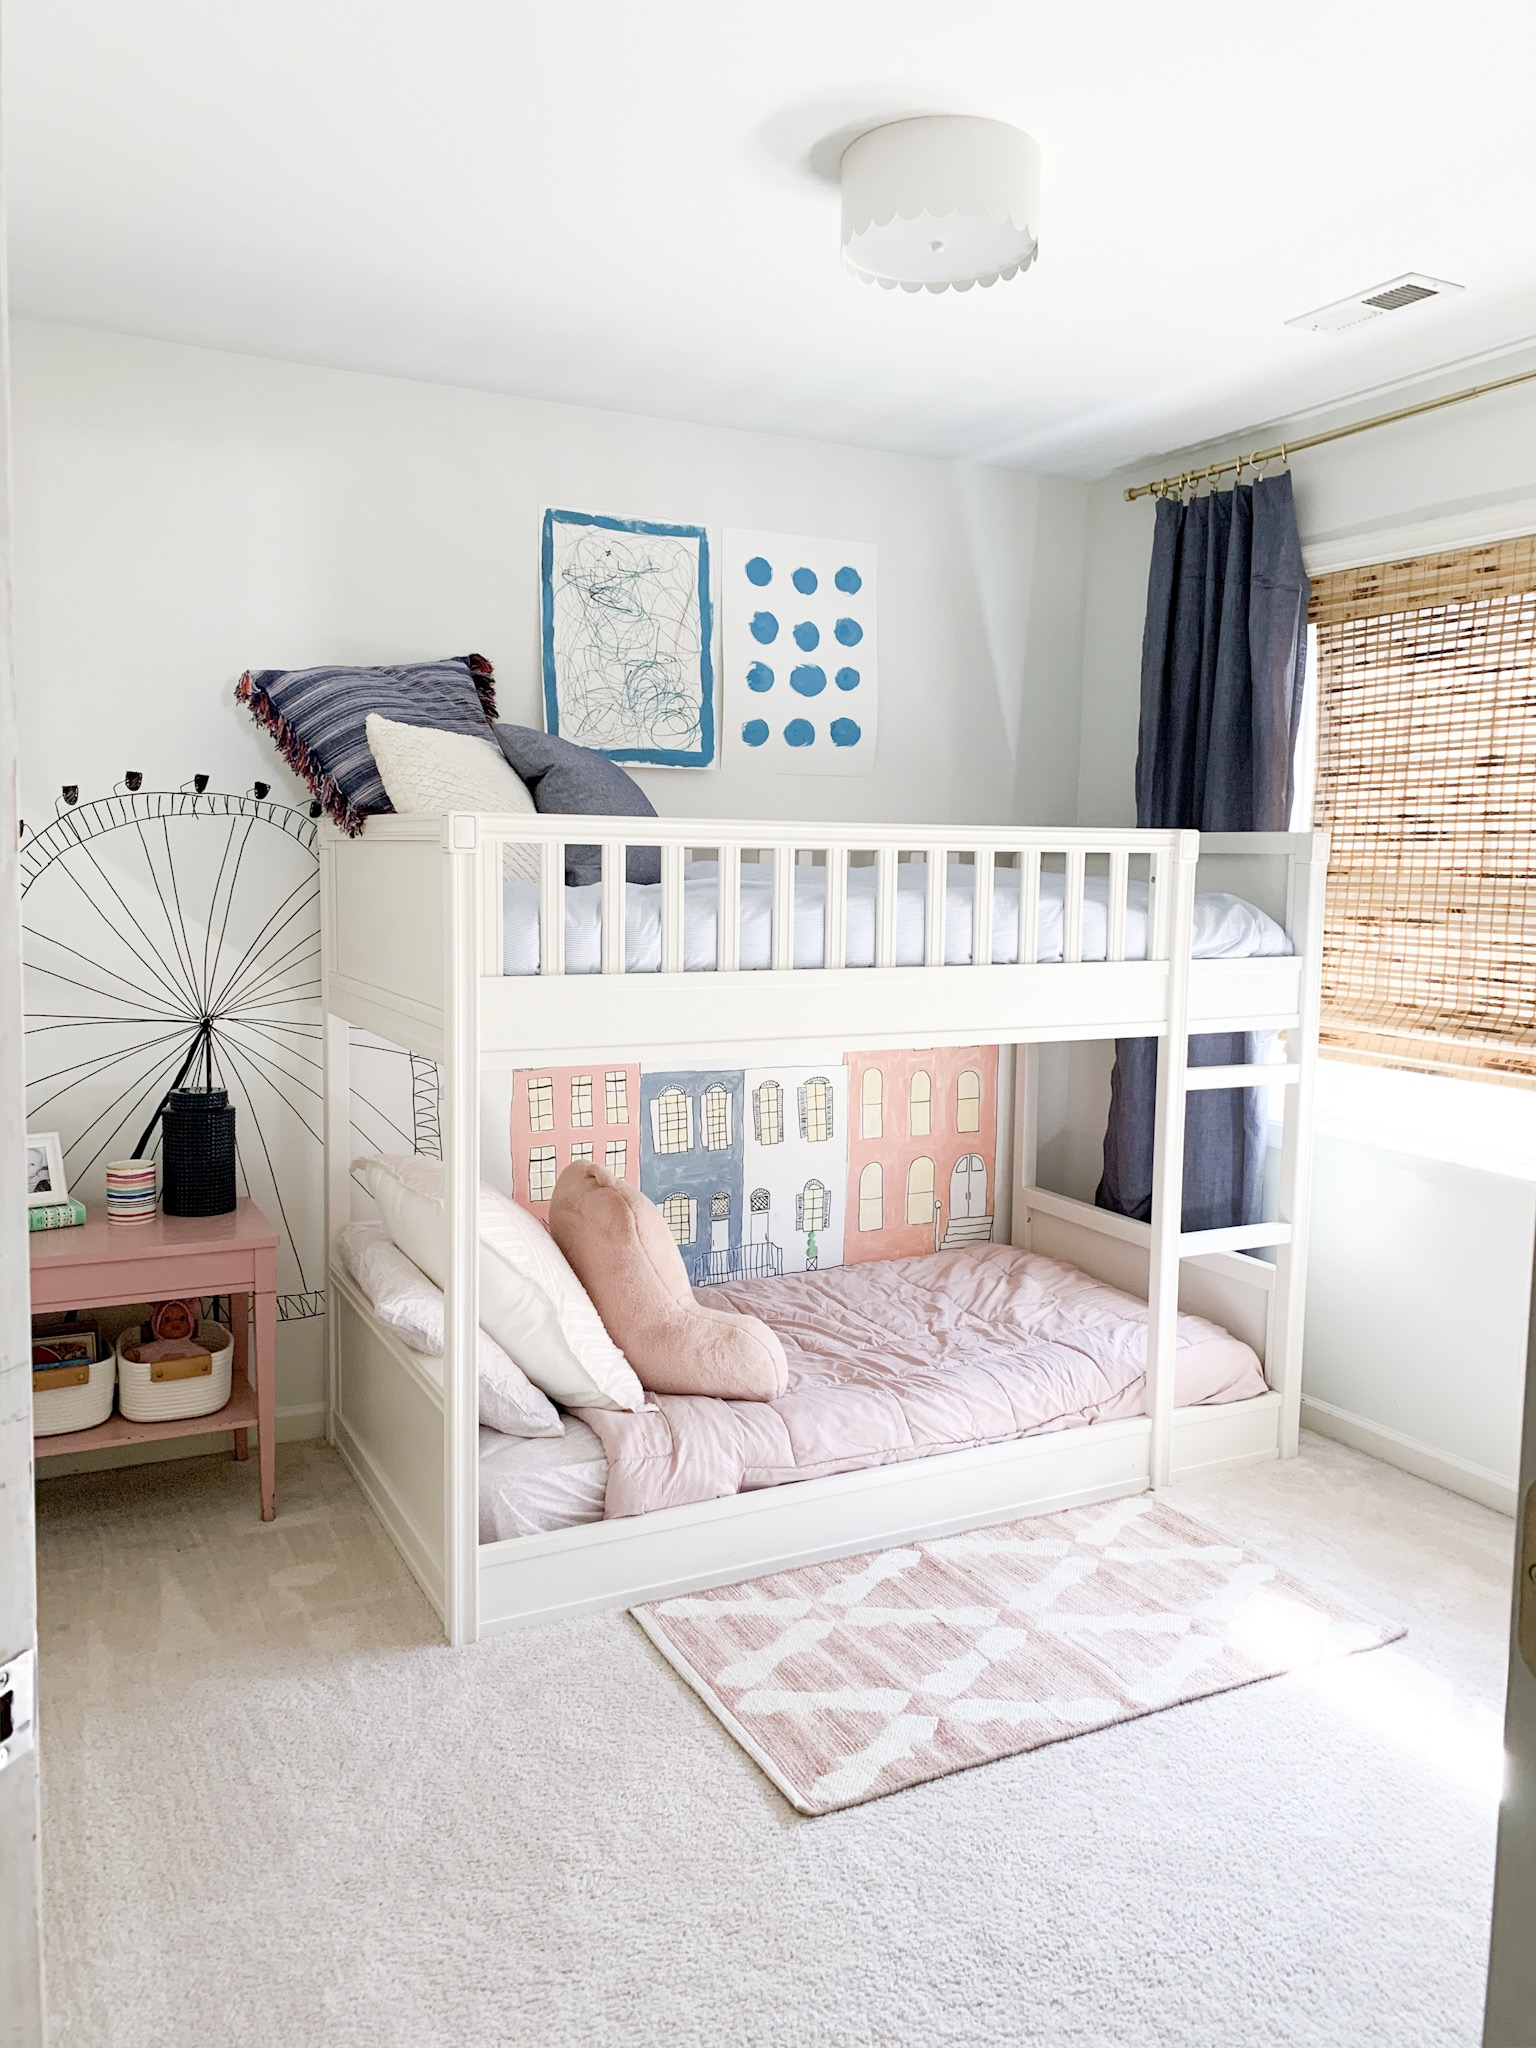 Pink and Blue shared bedroom with Bunk beds, wall mural and Pottery Barn